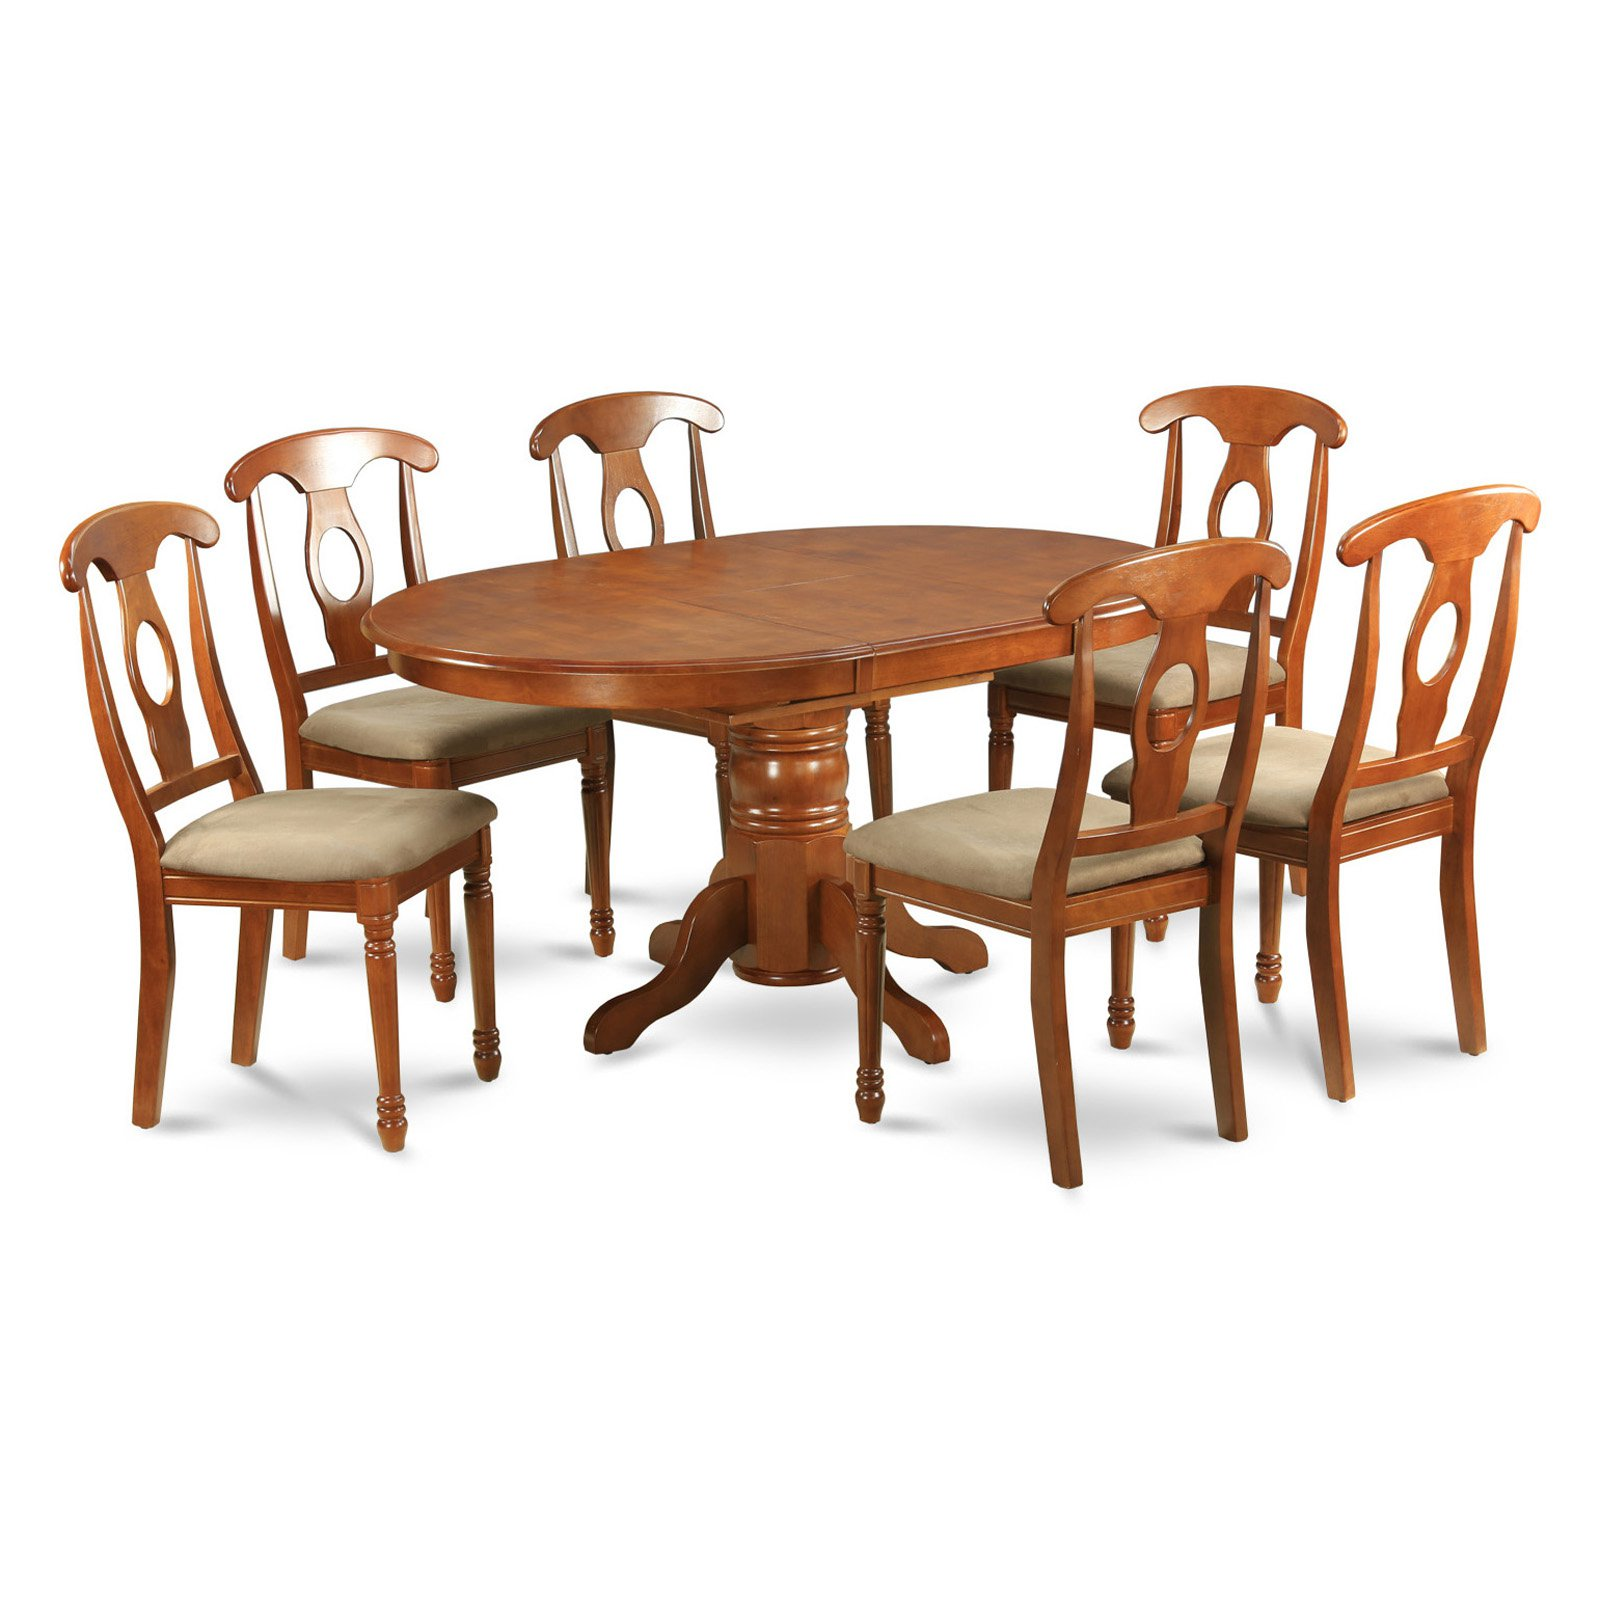 East West Furniture Avon 7 Piece Pedestal Oval Dining Table Set with Kenley Microfiber Seat Chairs